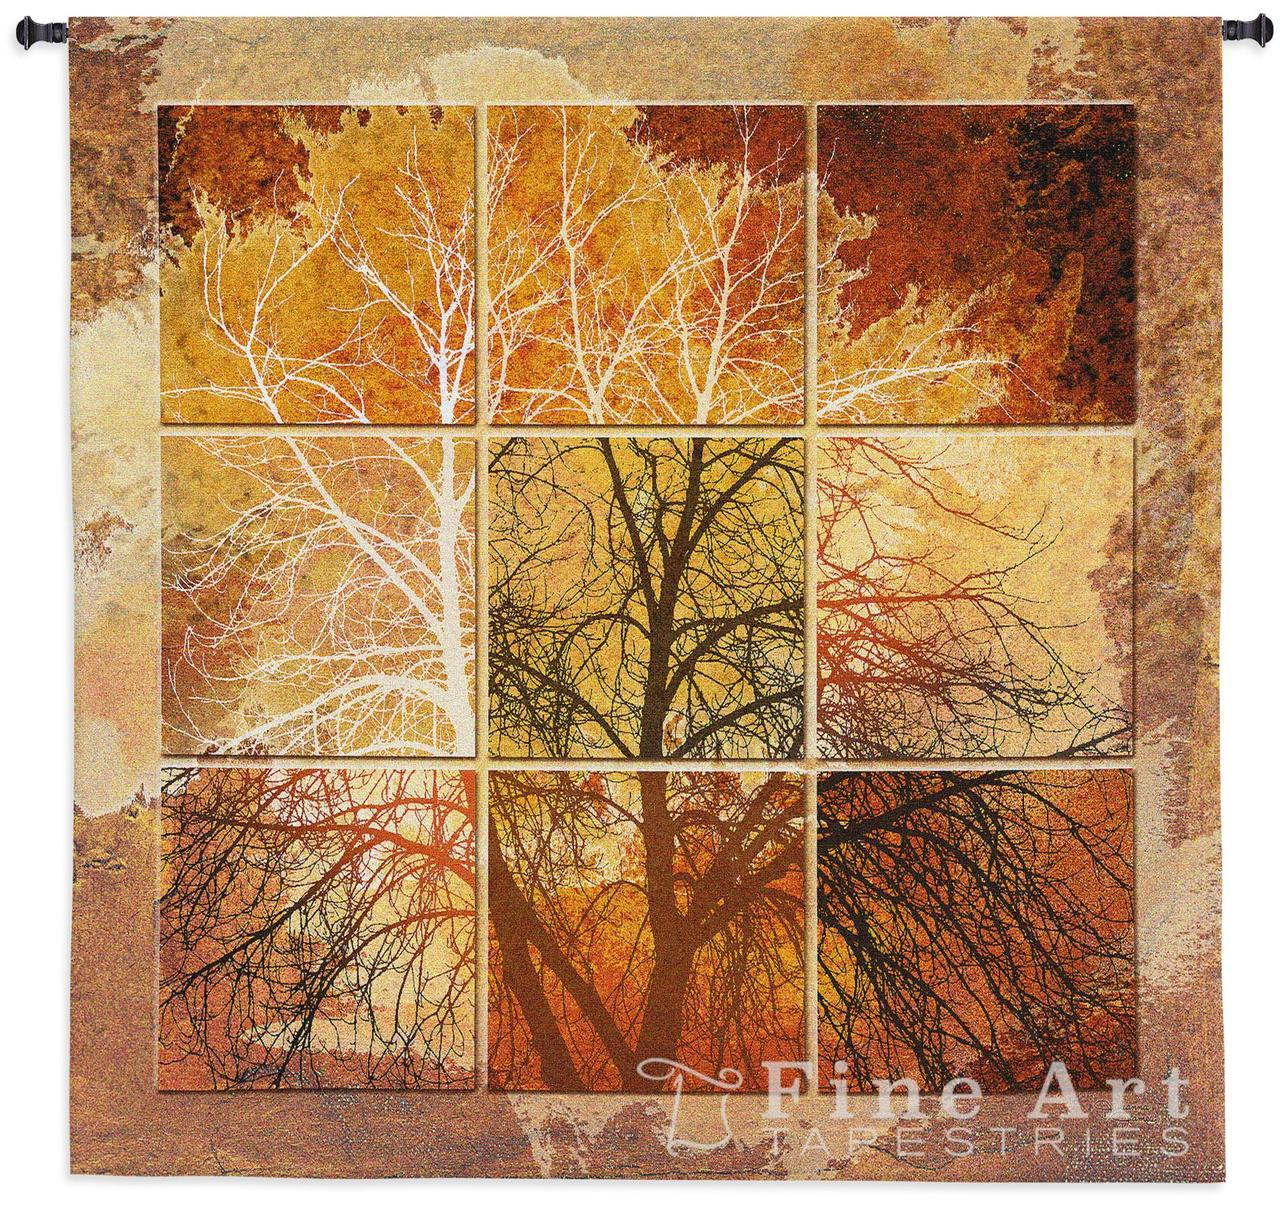 New tapestry wall hangings october light contemporary tapestry wall hanging - abstract tree picture,  h55 nrwenue